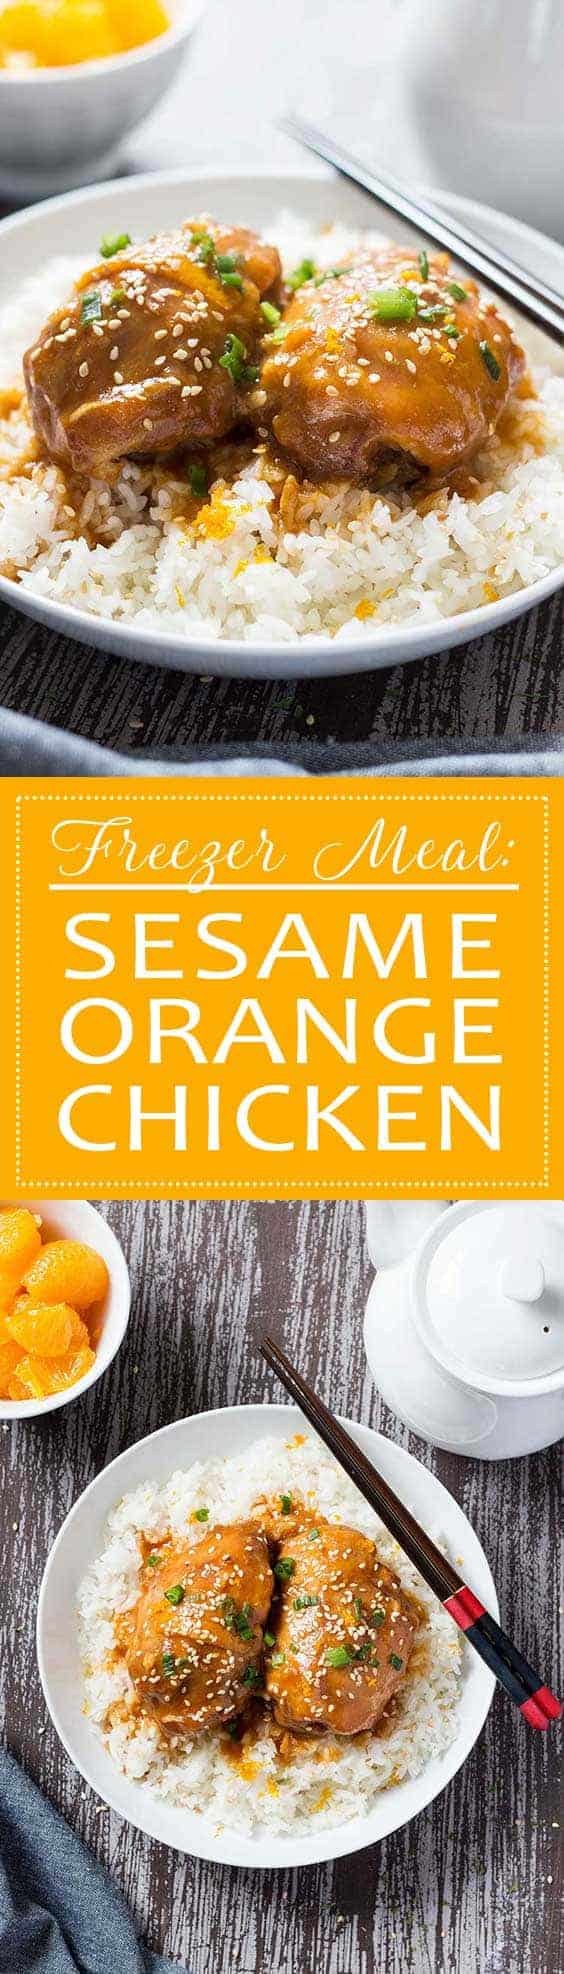 Freezer Meal: Sesame Orange Chicken | This easy freezer meal is a spin on a classic Chinese take-out dish, but without the take-out hassle or the take-out price!